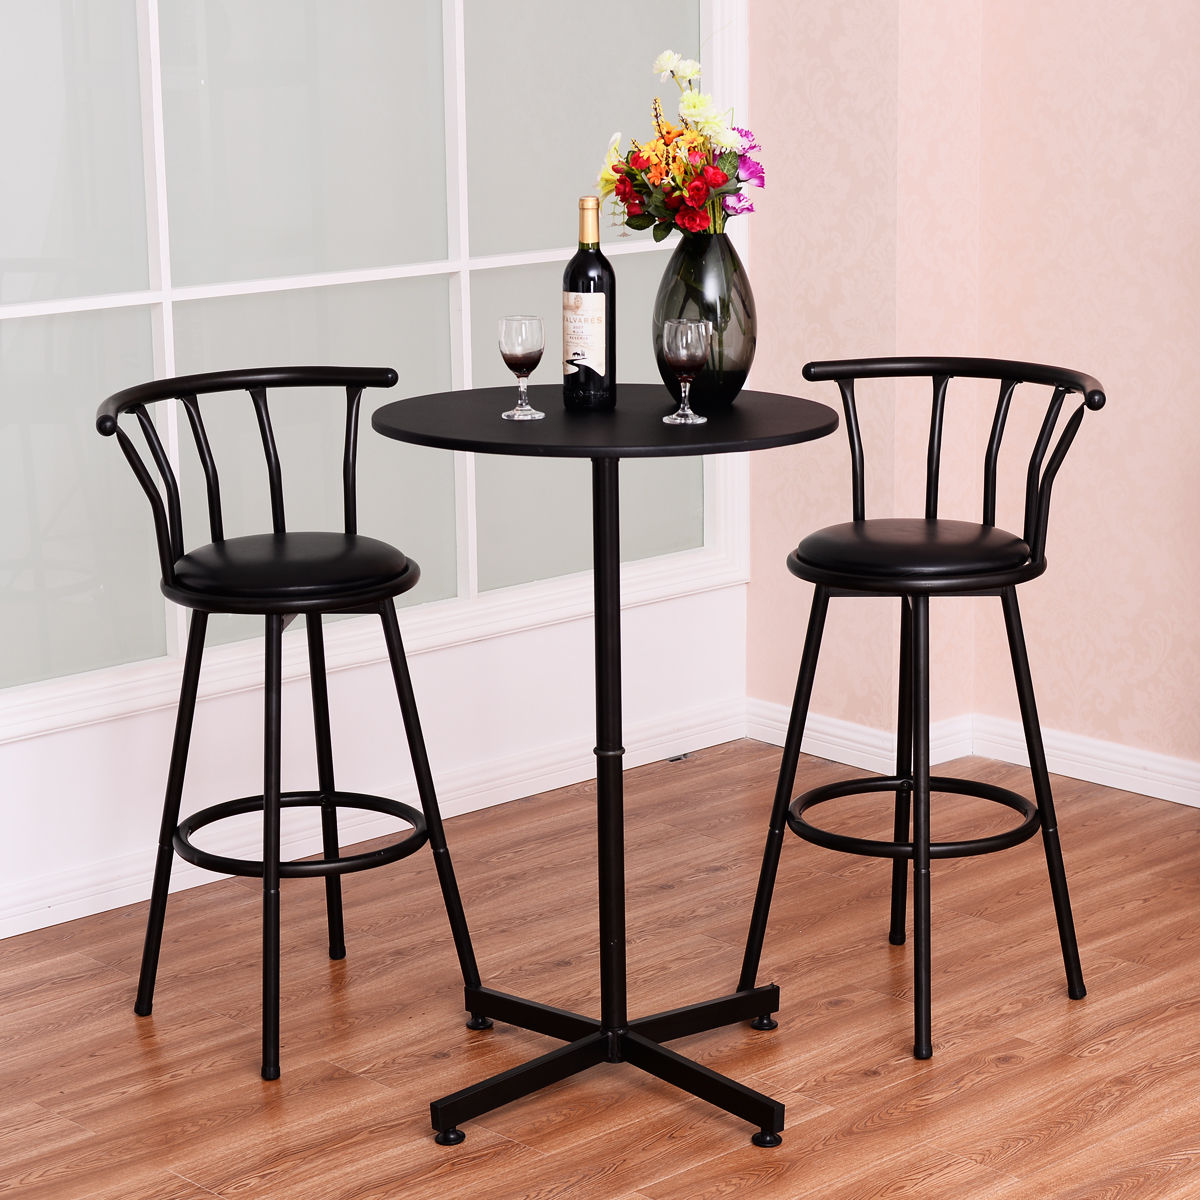 pub kitchen table best way to remove grease from cabinets 3 piece bar set w 2 stools bistro dining furniture black